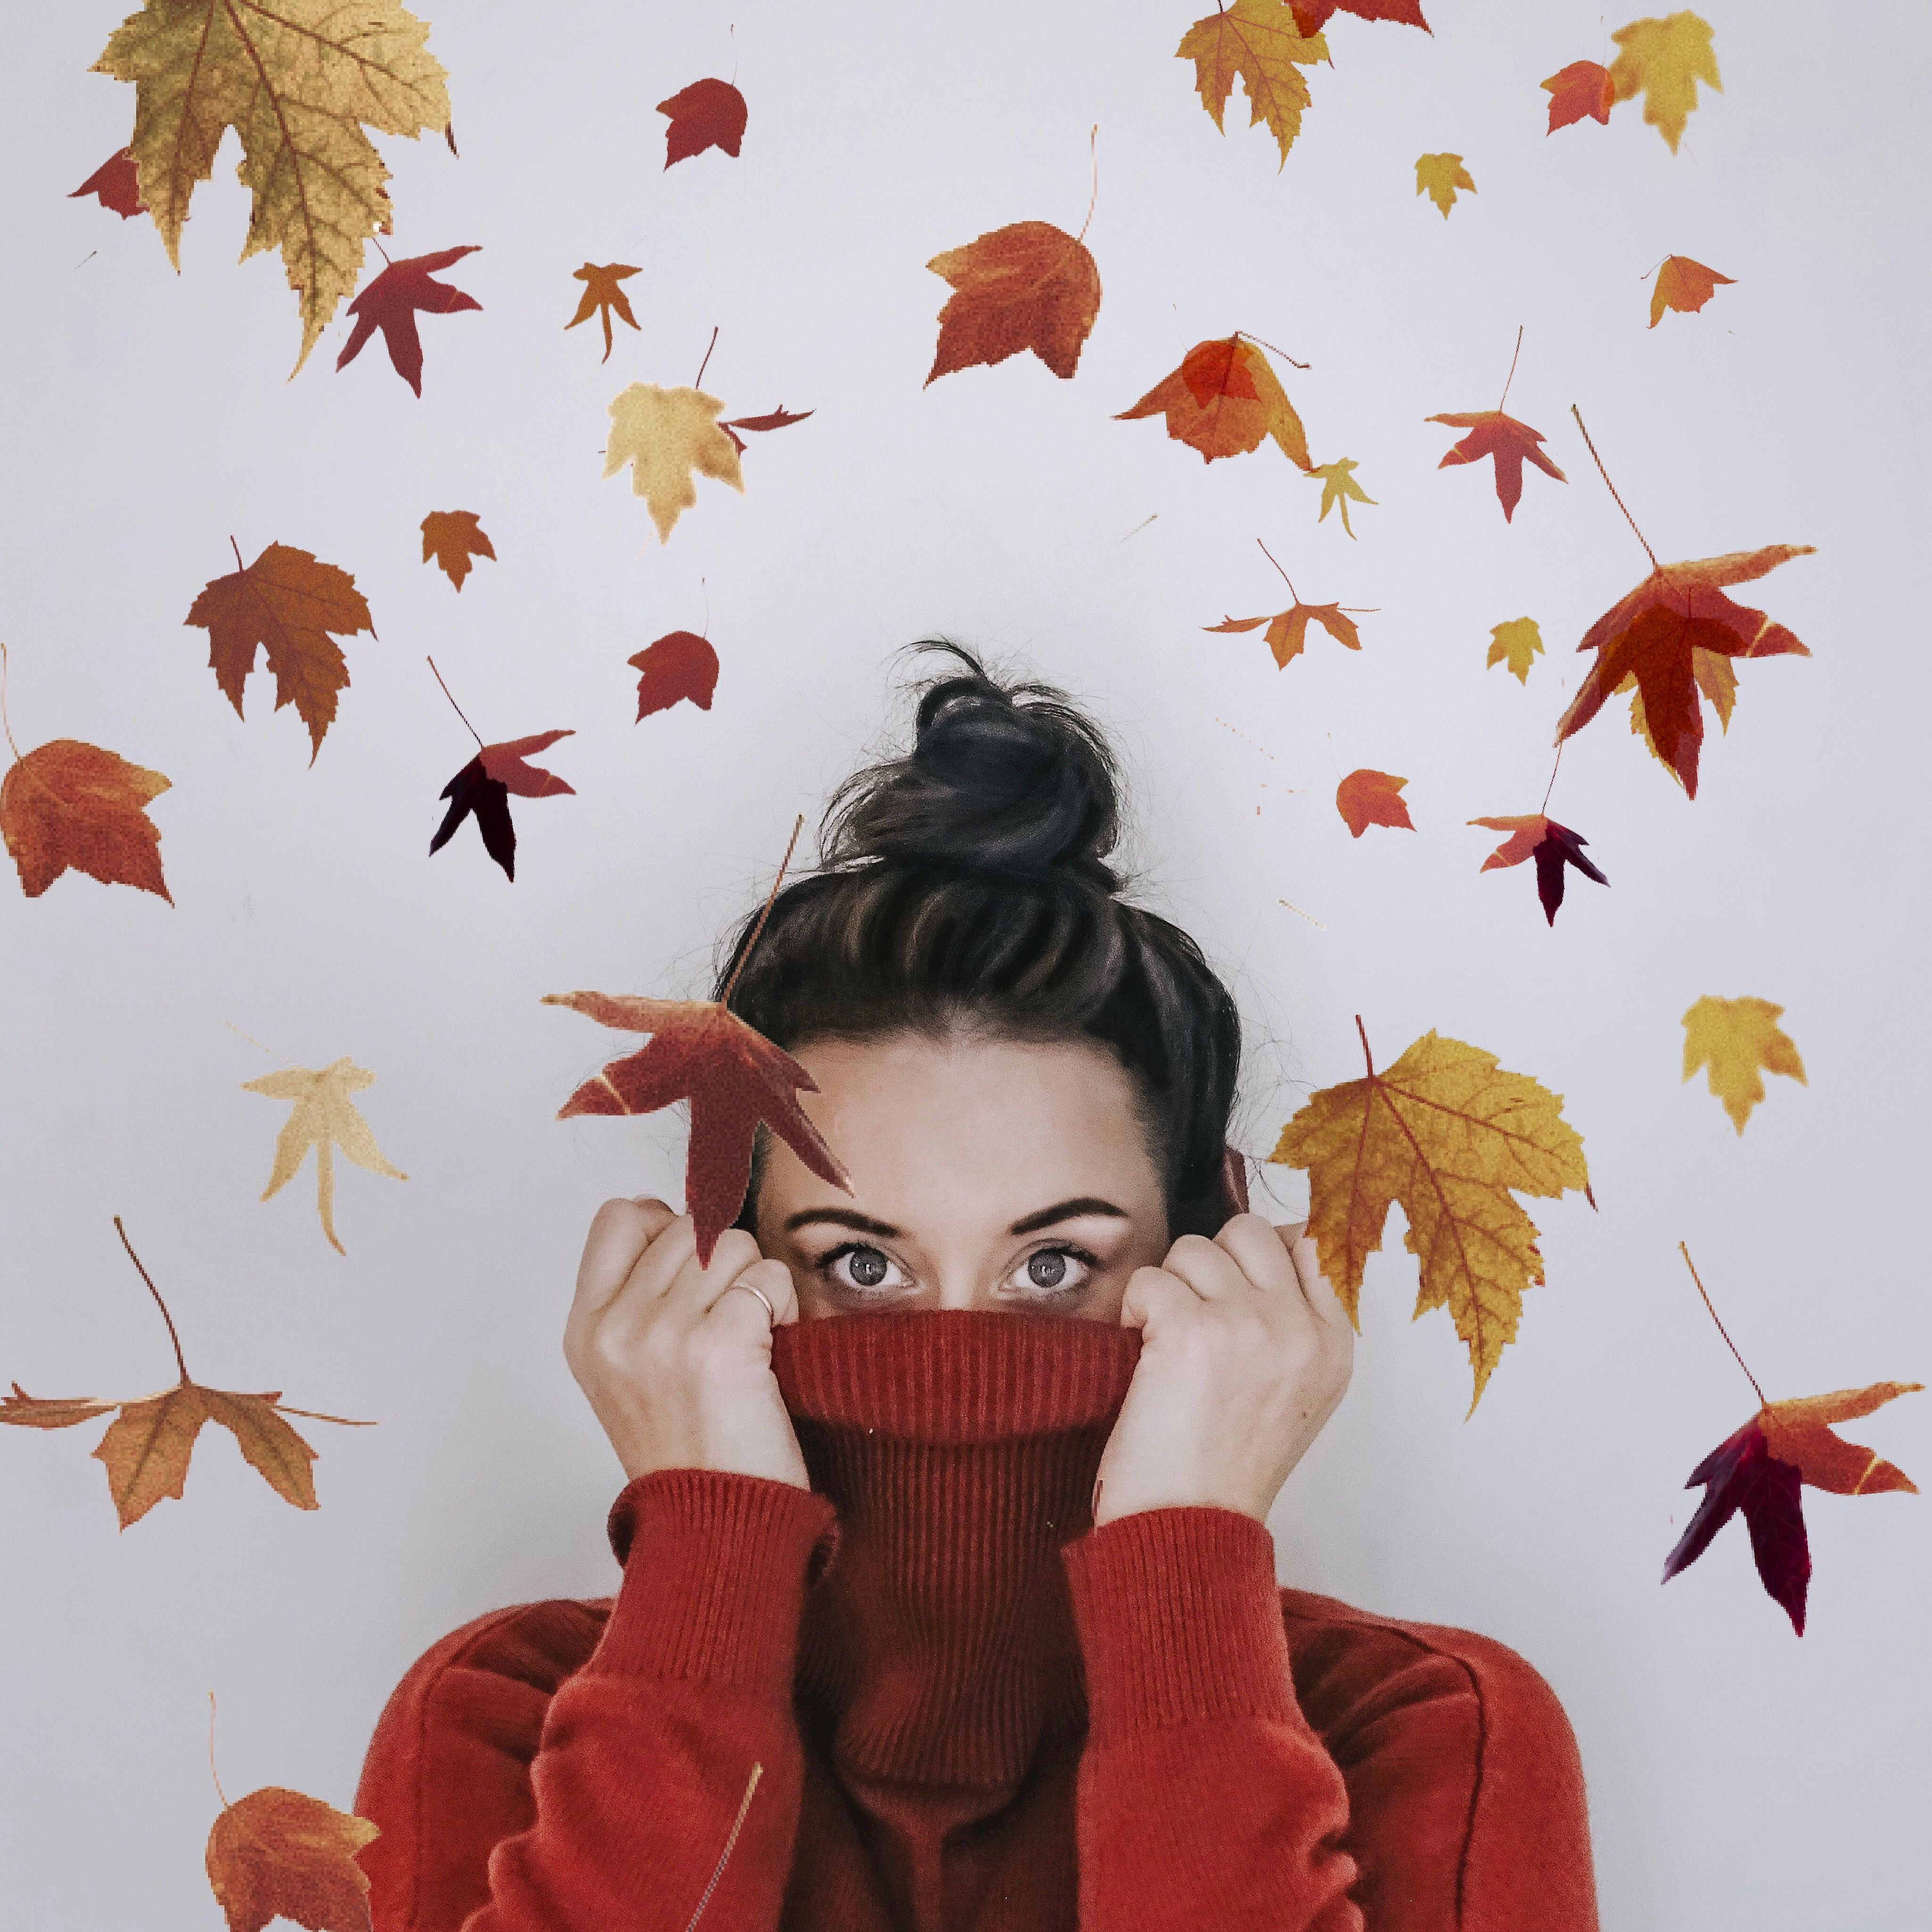 Cosy autumnal jumper and leaves  #autumnleavesfalling Autumn portrait. Roll neck jumper autumn style. Fun portrait for autumn. Leaves falling photo. #autumnleavesfalling Cosy autumnal jumper and leaves  #autumnleavesfalling Autumn portrait. Roll neck jumper autumn style. Fun portrait for autumn. Leaves falling photo. #autumnleavesfalling Cosy autumnal jumper and leaves  #autumnleavesfalling Autumn portrait. Roll neck jumper autumn style. Fun portrait for autumn. Leaves falling photo. #autumnleav #autumnleavesfalling